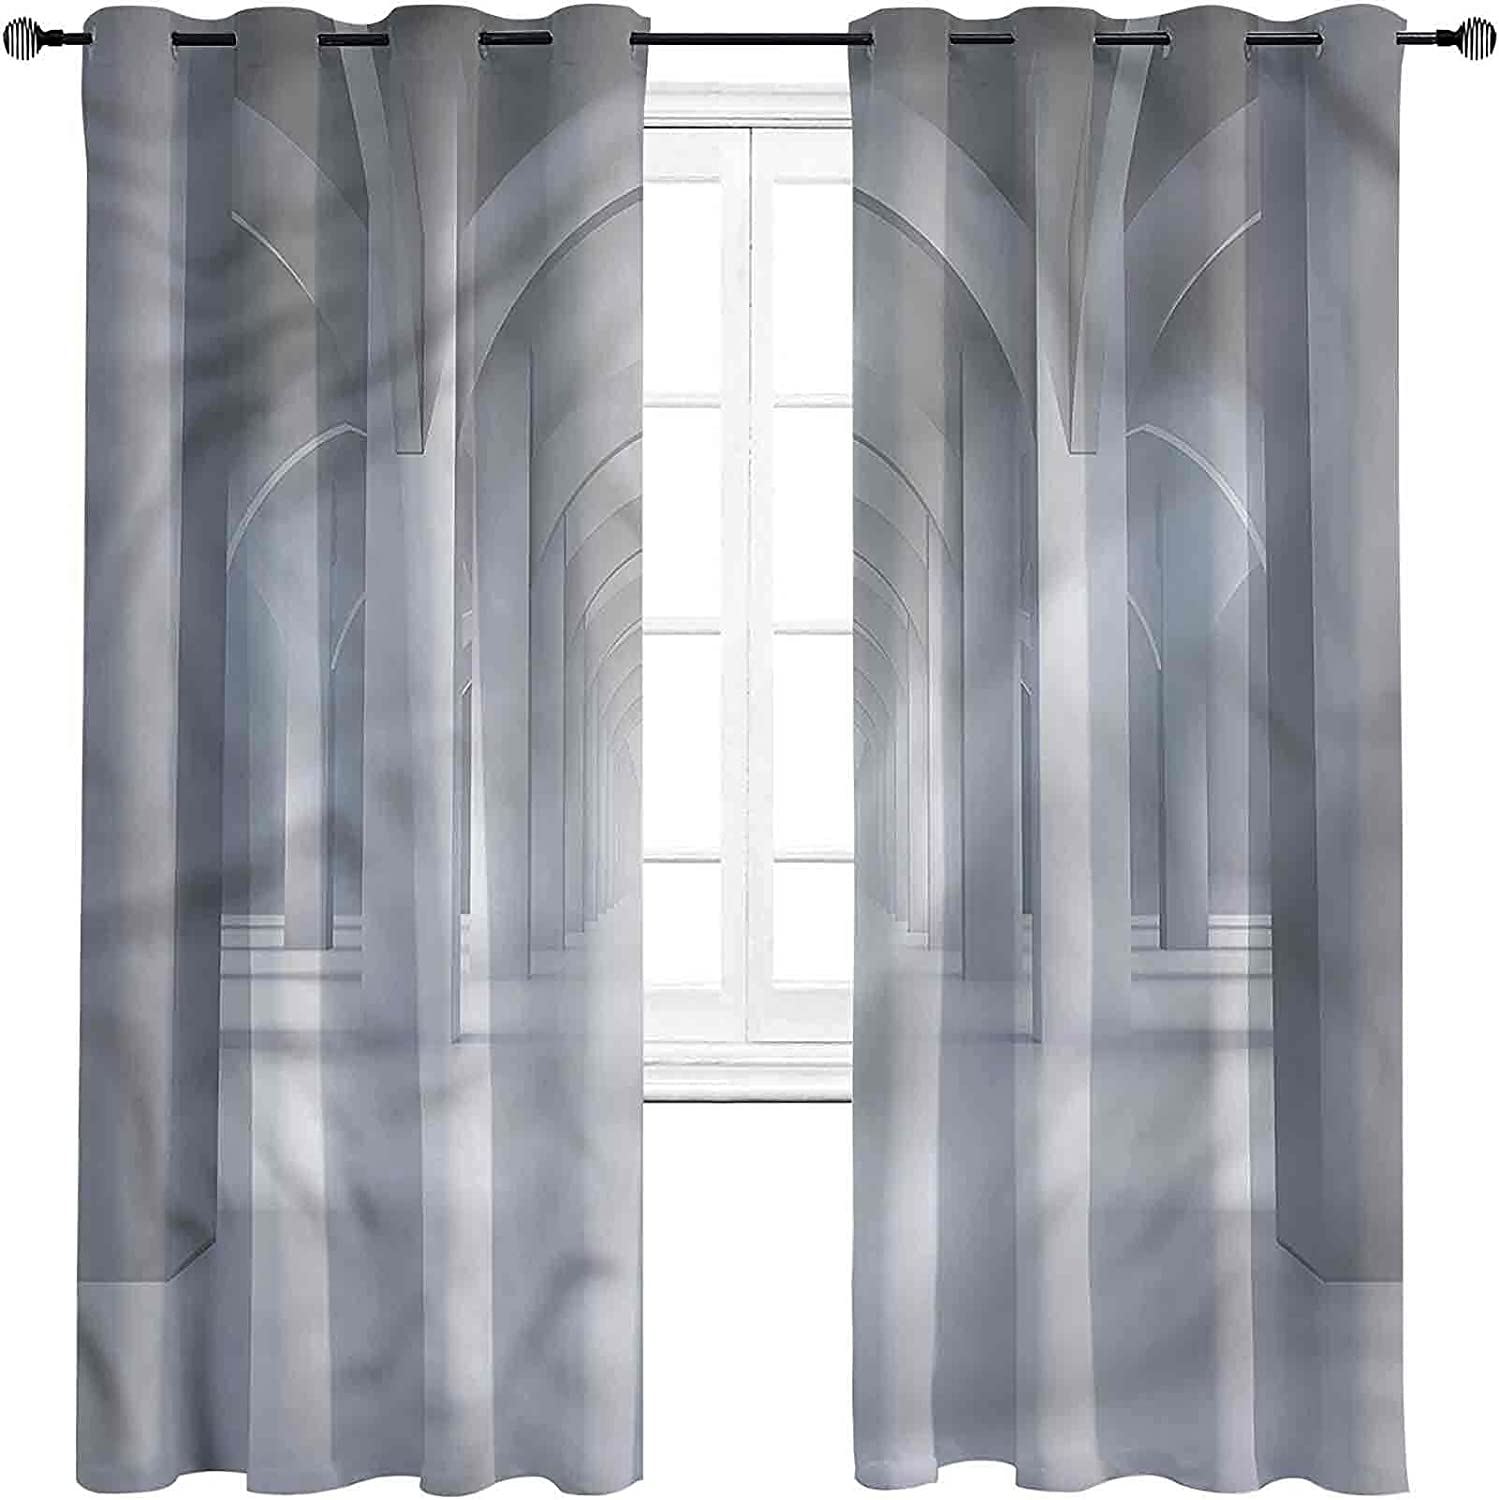 Antique Bedroom Blackout Minneapolis Mall Curtains Illustration Hallway New item fo Long